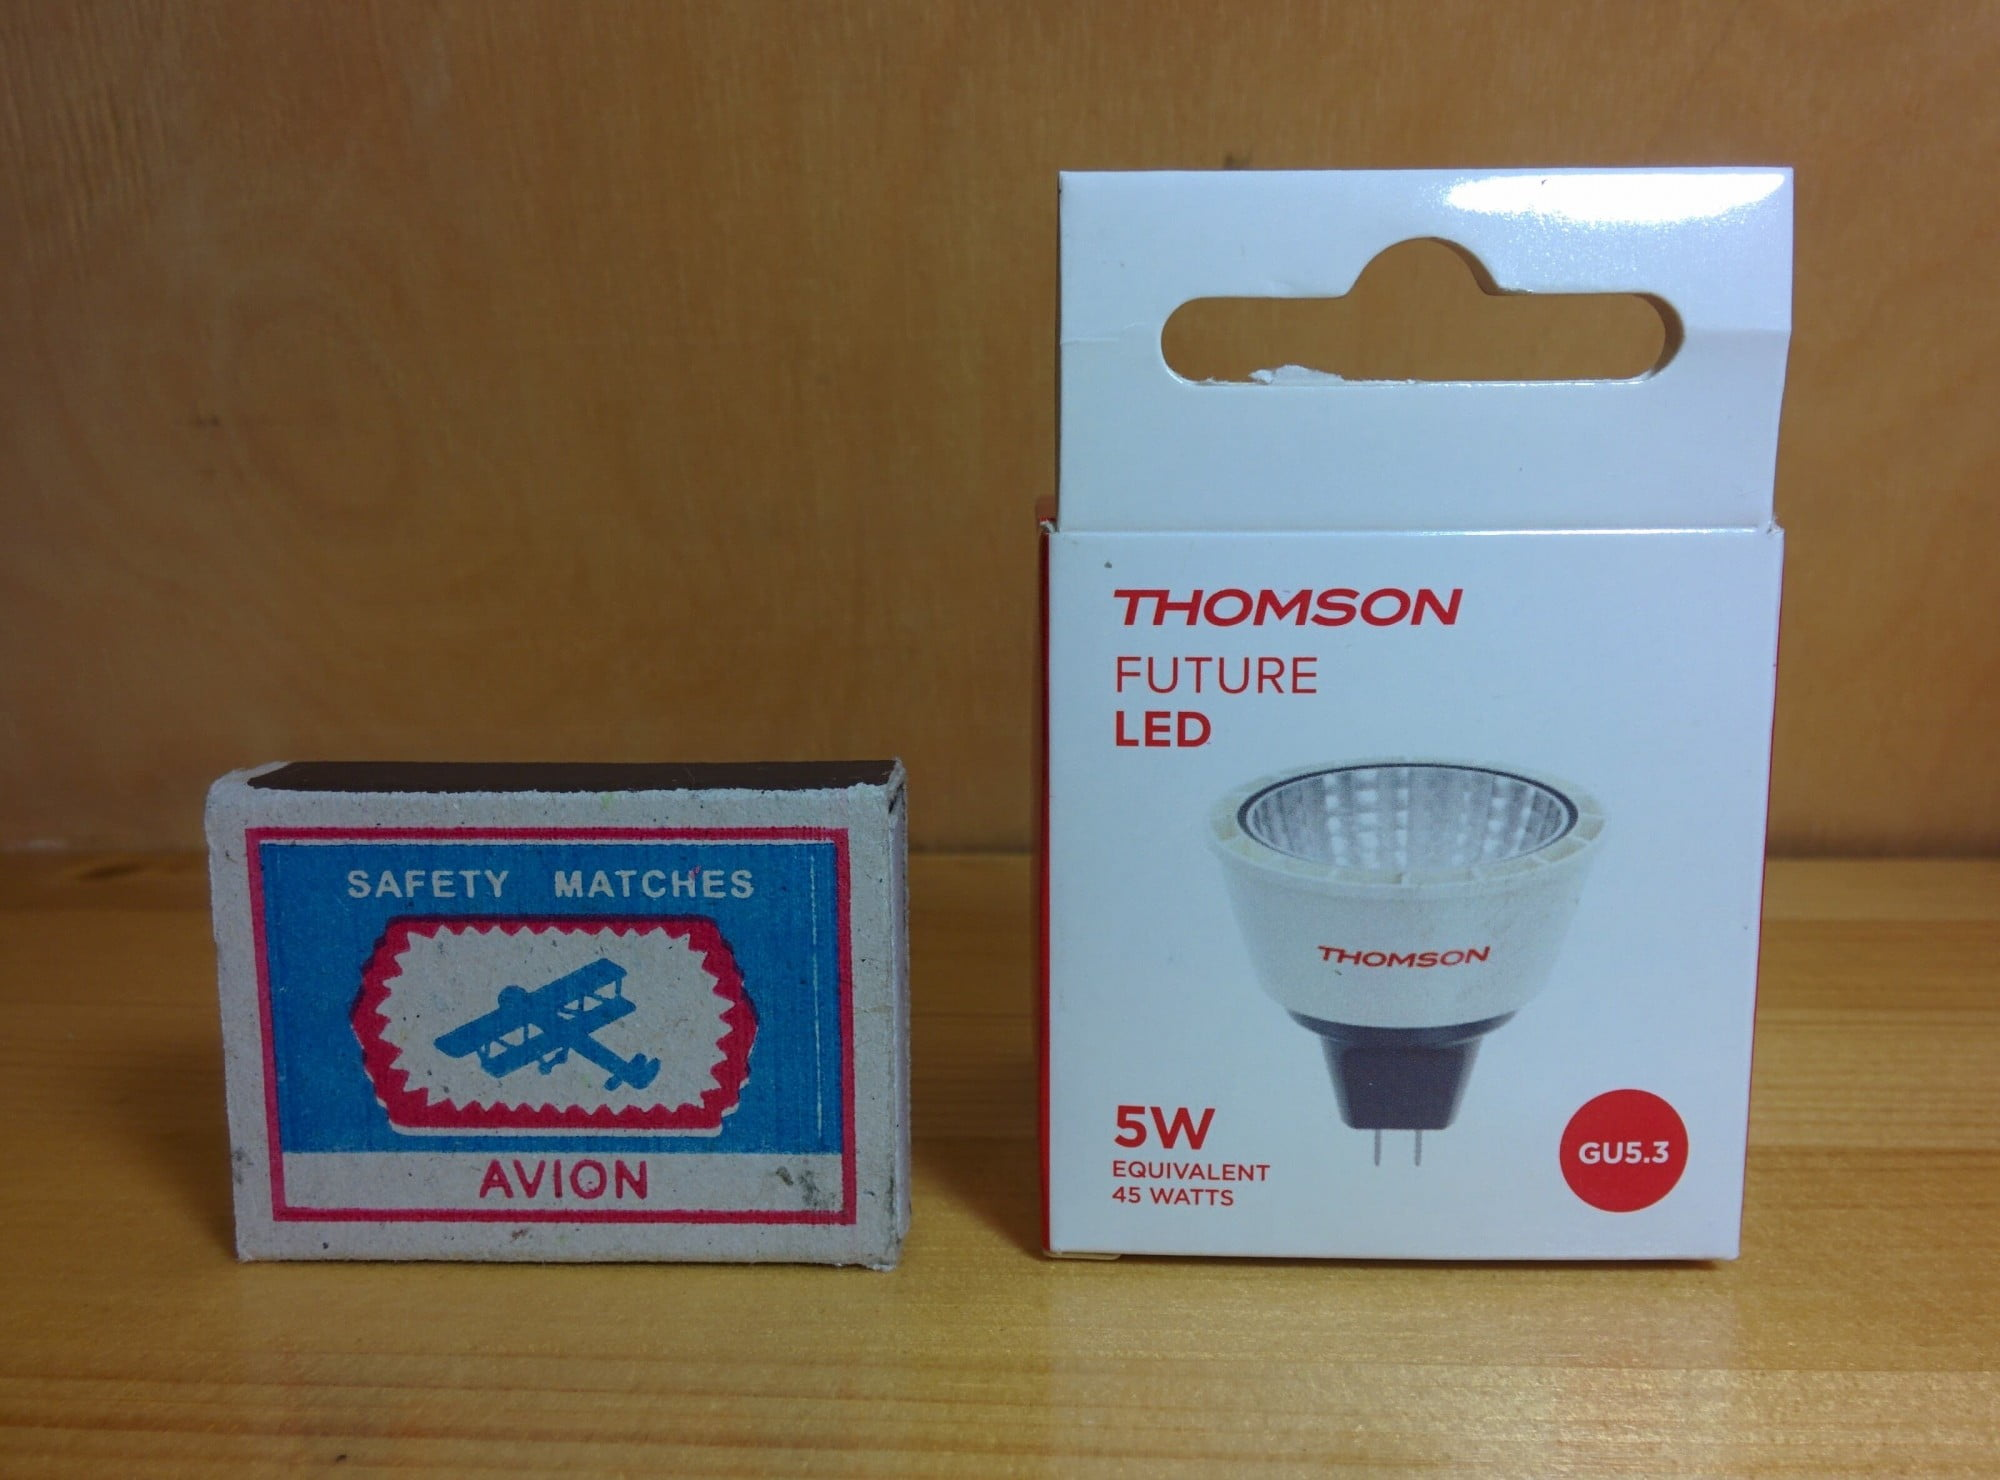 Thomson TL-MR16W-5W12V упаковка